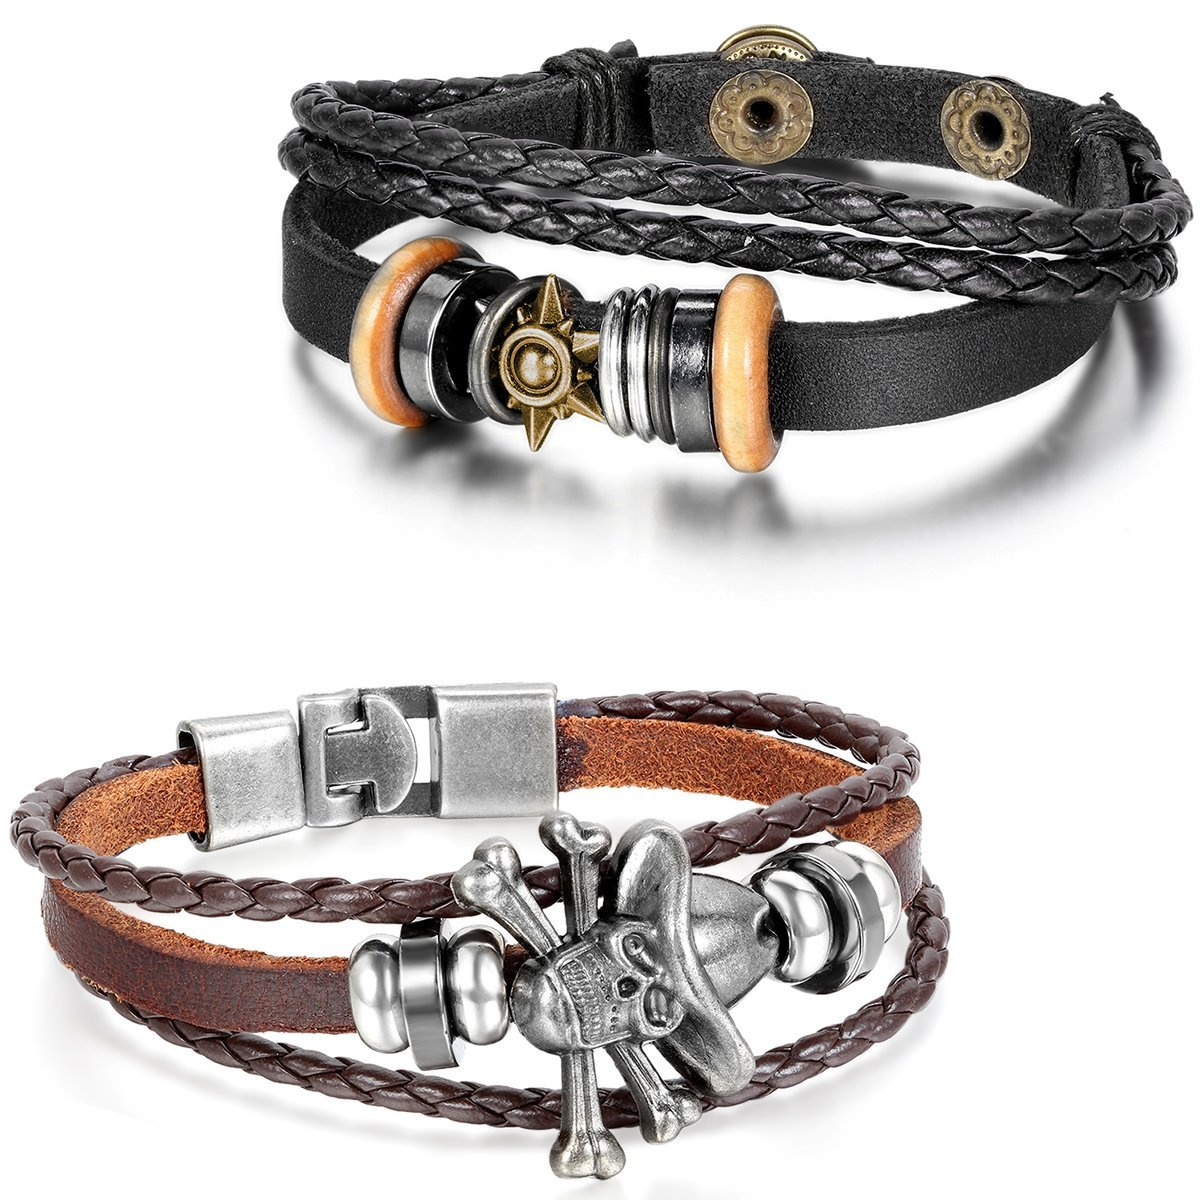 Aroncent 2pcs Leather Bracelet Vintage Sun Pirate Skull Bangle Wristband - Black Brown arnfr-0332